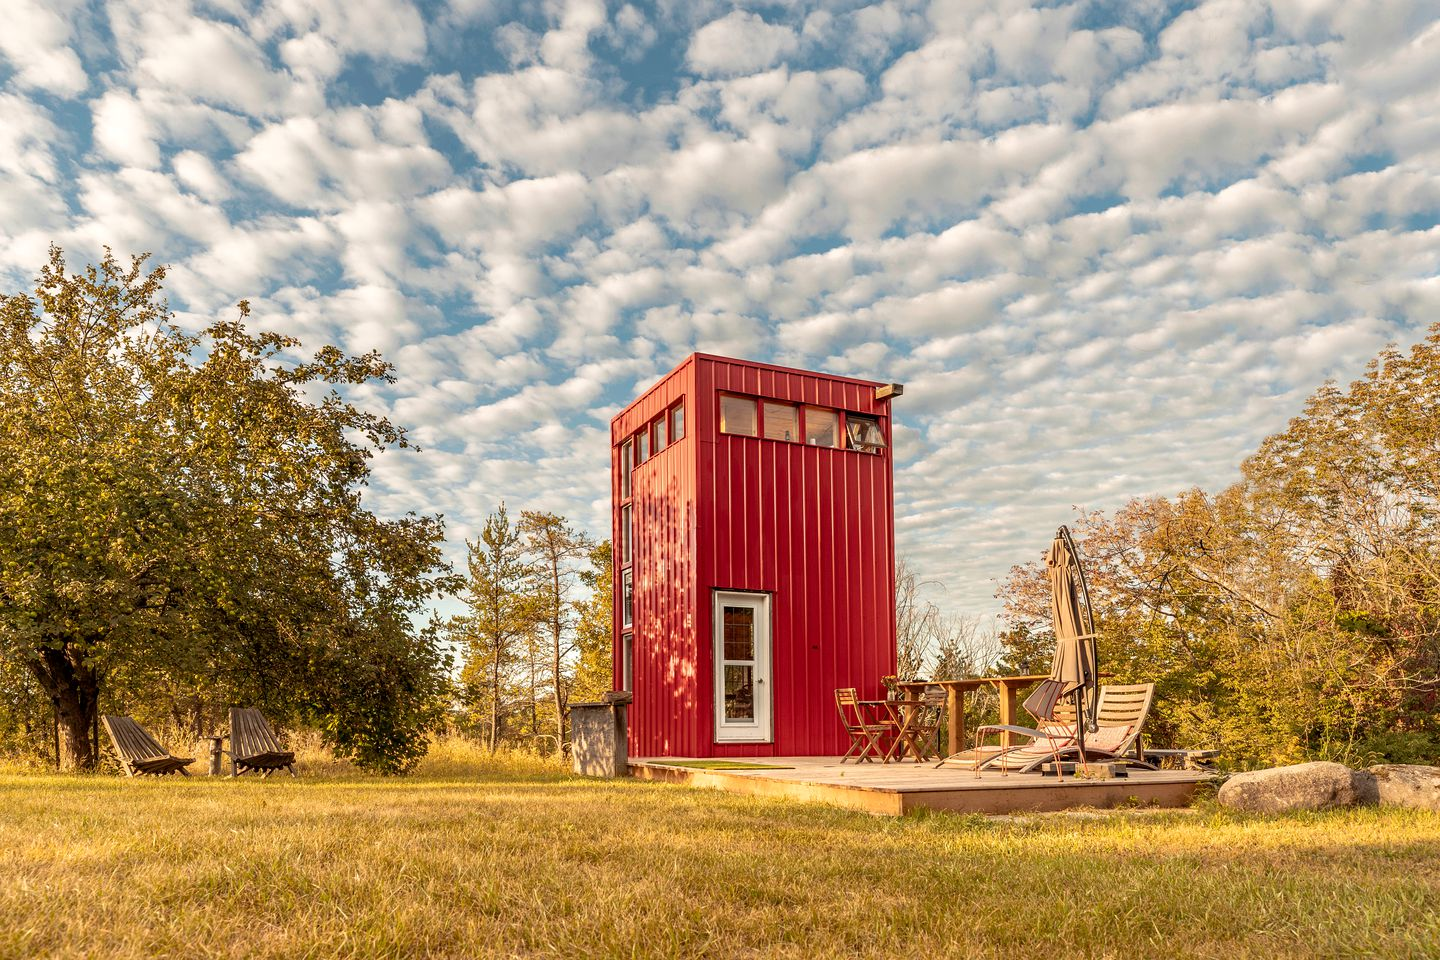 The bright red tiny house rental for romantic getaways, Ontario